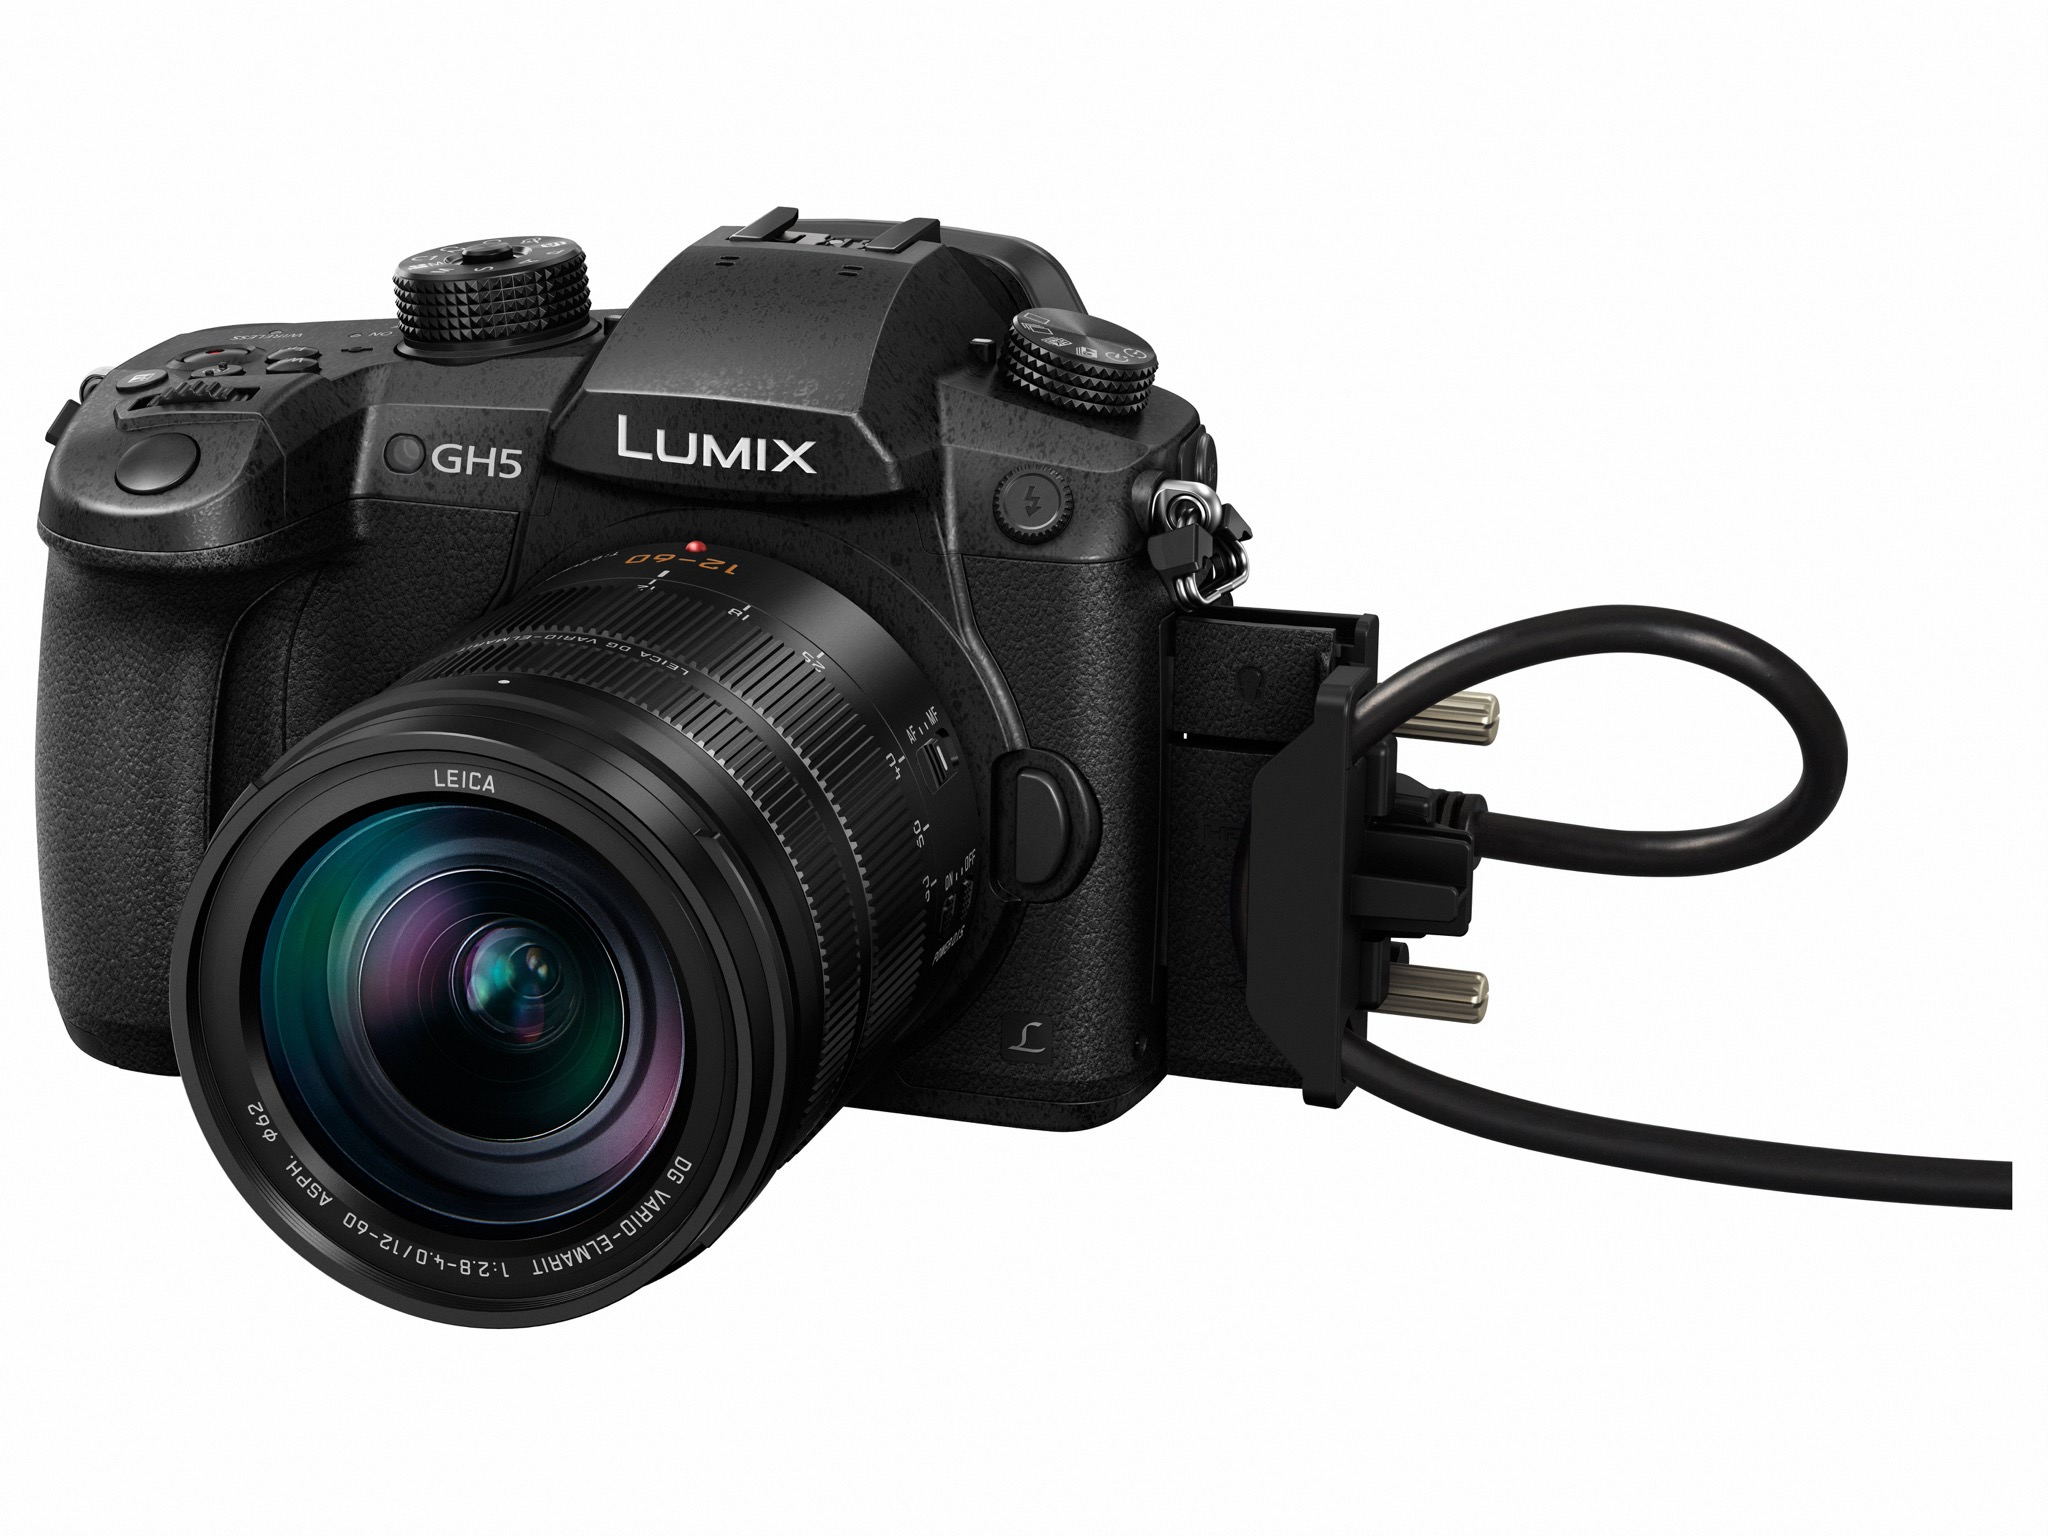 LUMIX GH5 with included screw-in HDMI and USB locking device